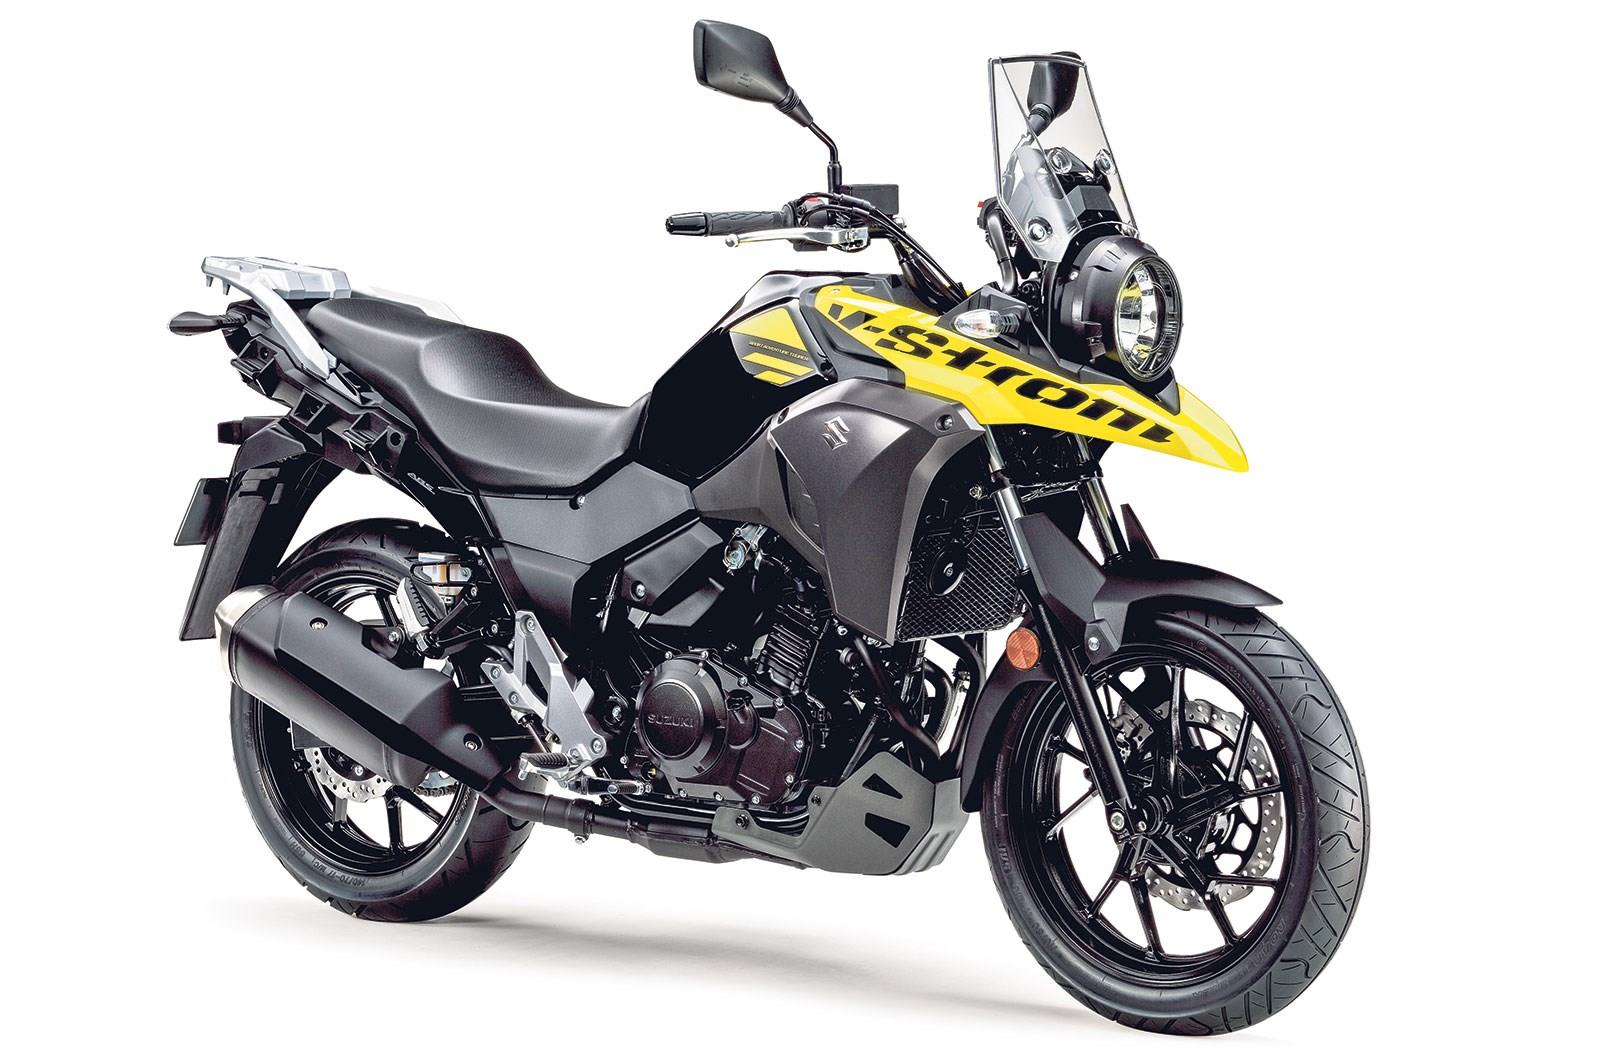 suzuki dl250 v strom 2017 on review specs prices mcn. Black Bedroom Furniture Sets. Home Design Ideas